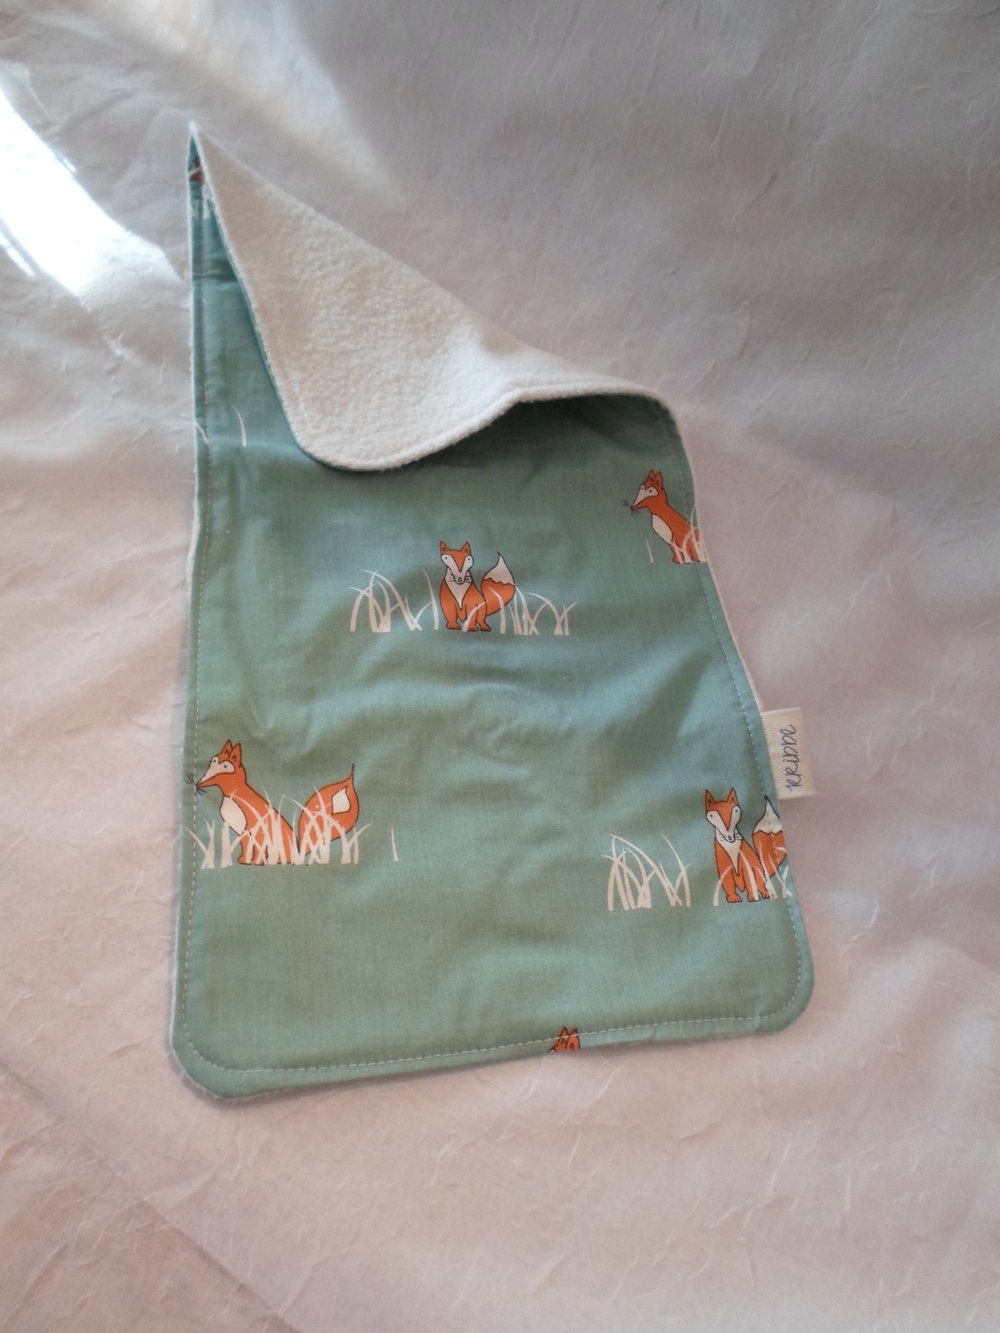 Kribbe Organic Cotton Burp Cloth in Fox    Locally Handmade   $14.00    wants 1  purchased